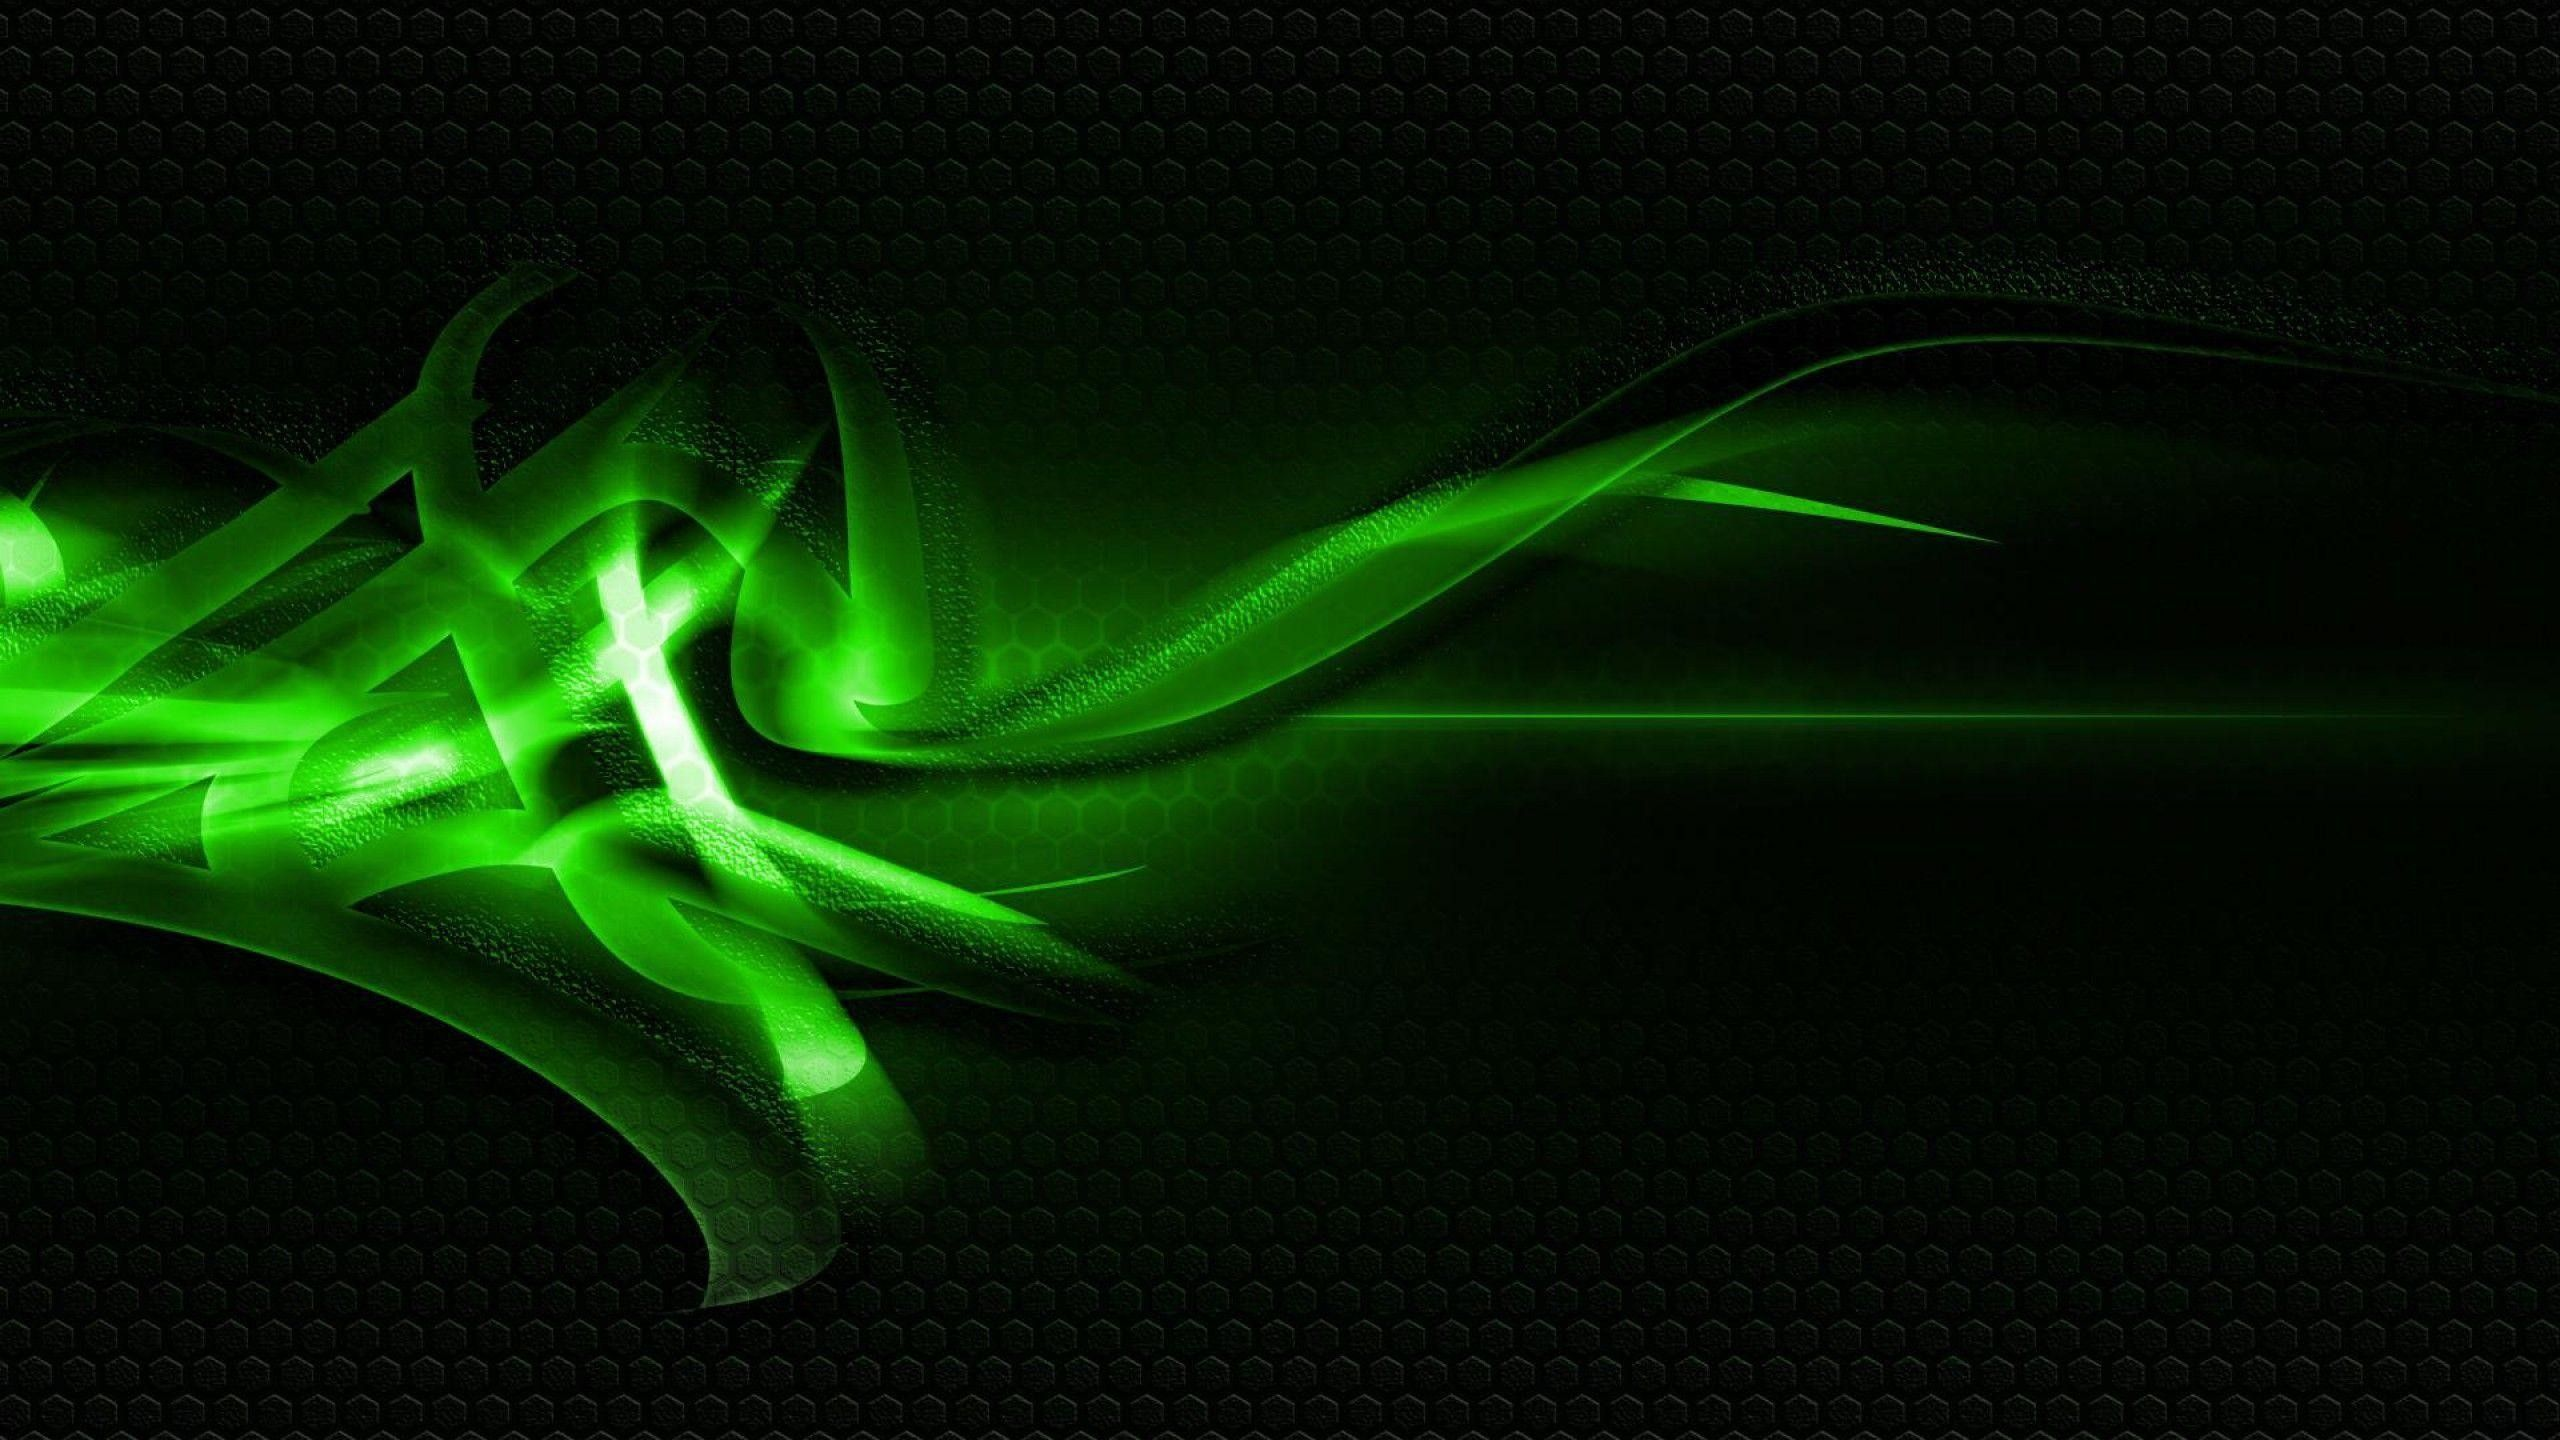 Gorgerous Green And Black Abstract Wallpaper 2560x1440 For Mobile Hd Abstract Art Wallpaper Green Abstract Art Black Abstract Wallpaper